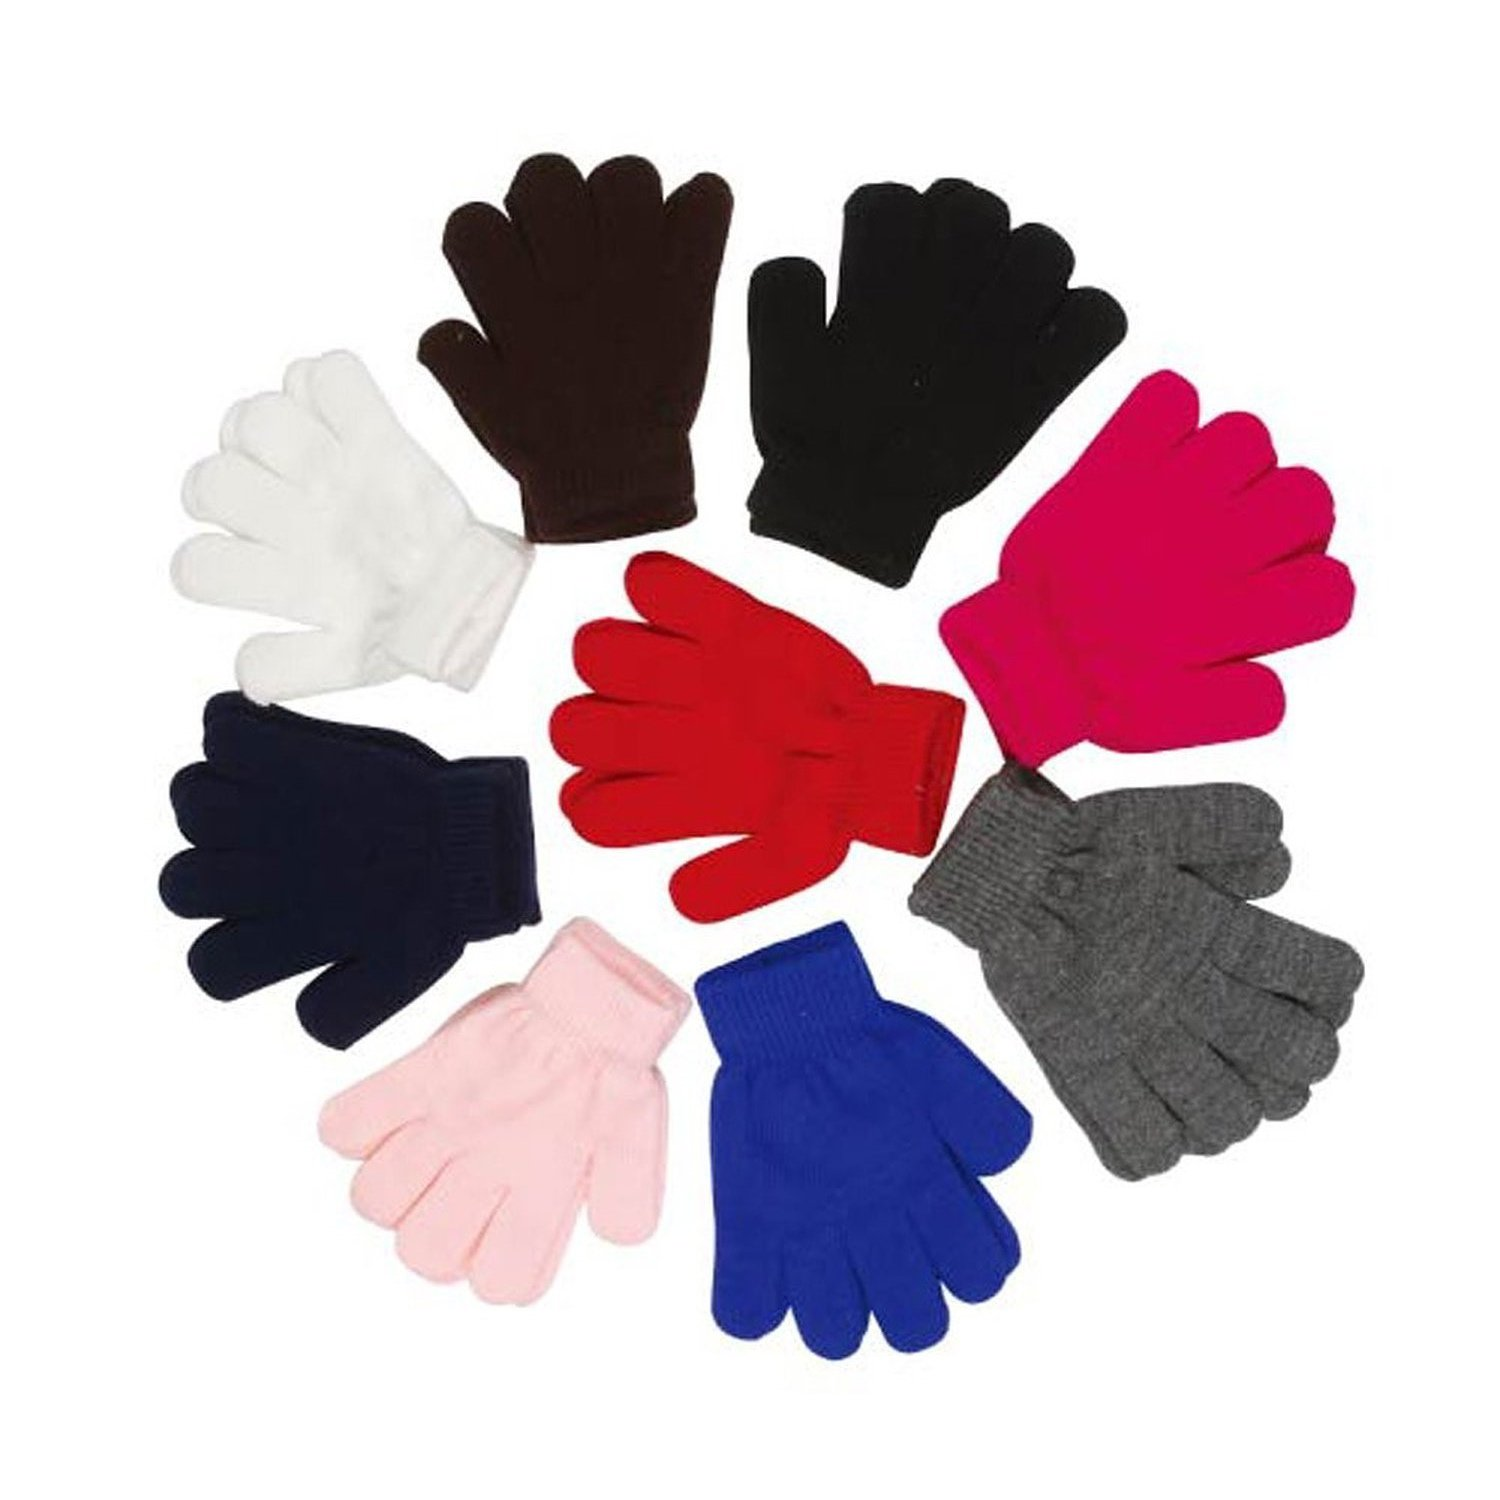 Akanbou Magic Gloves Stretch Gloves Knit 6 Pairs Wholesale- Fit Teens and Adults